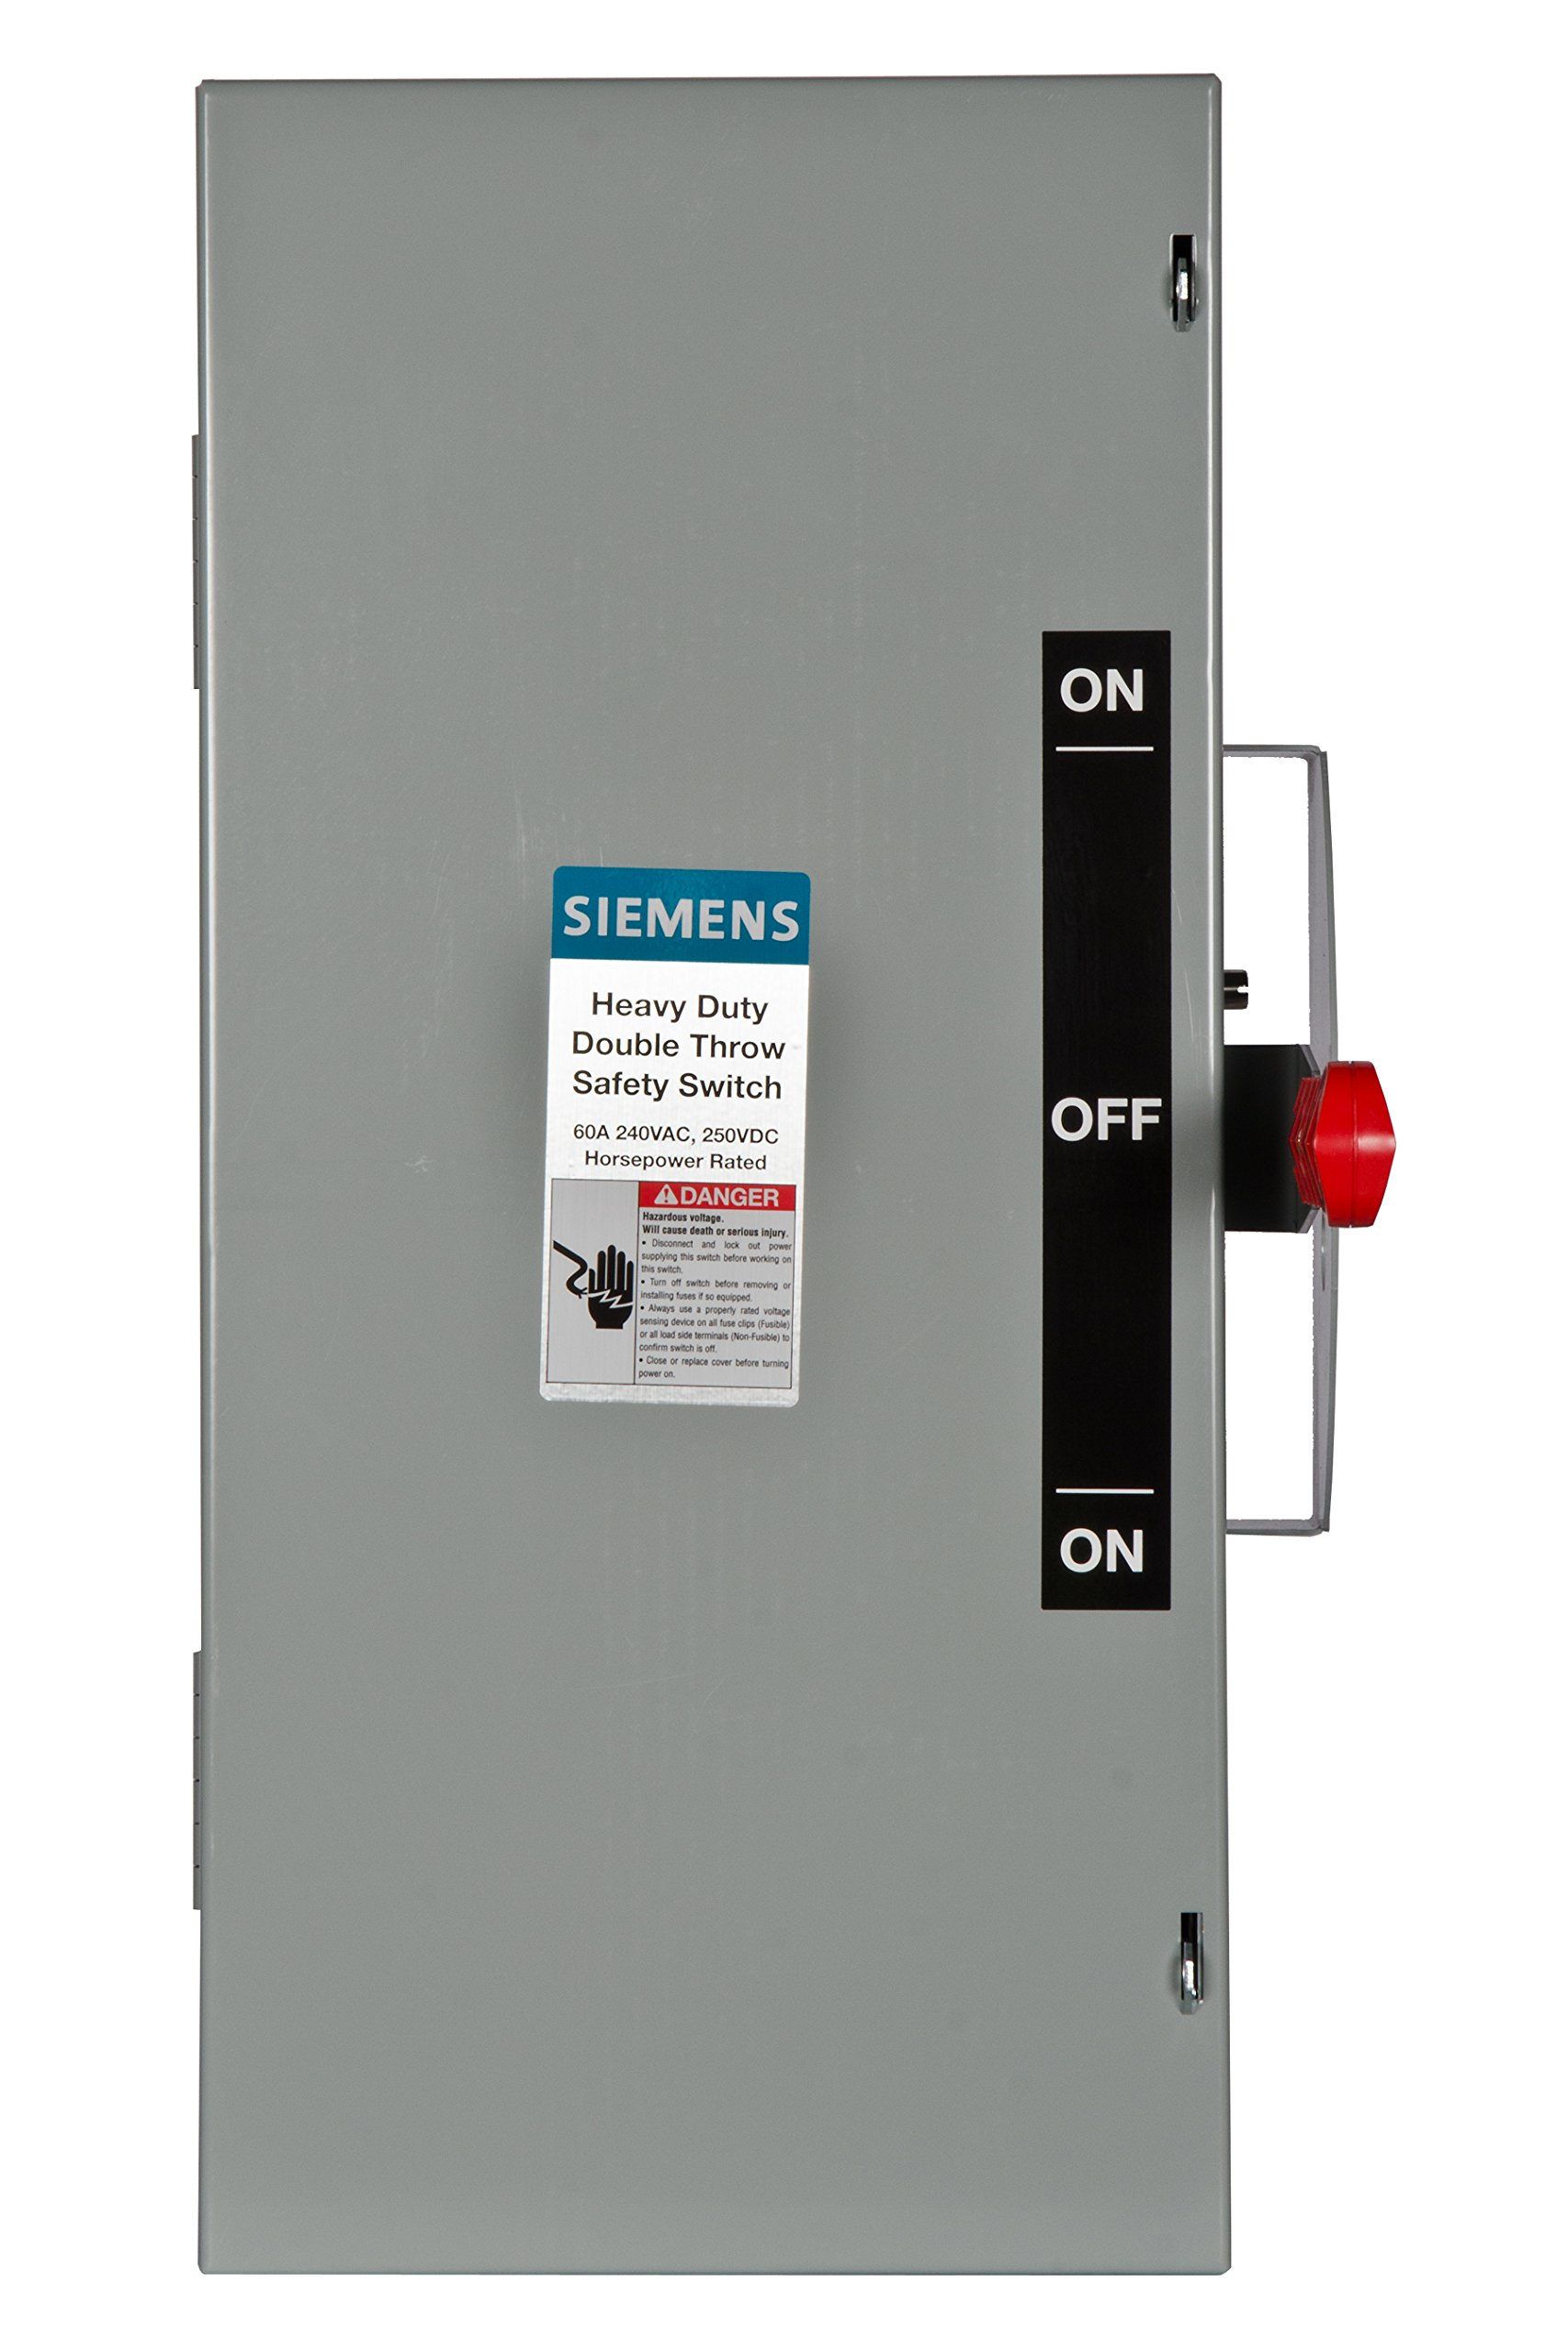 Siemens DTNF322 60-Amp 3 Pole 240-volt 3 Wire Non-Fused Double Throw Safety Switches